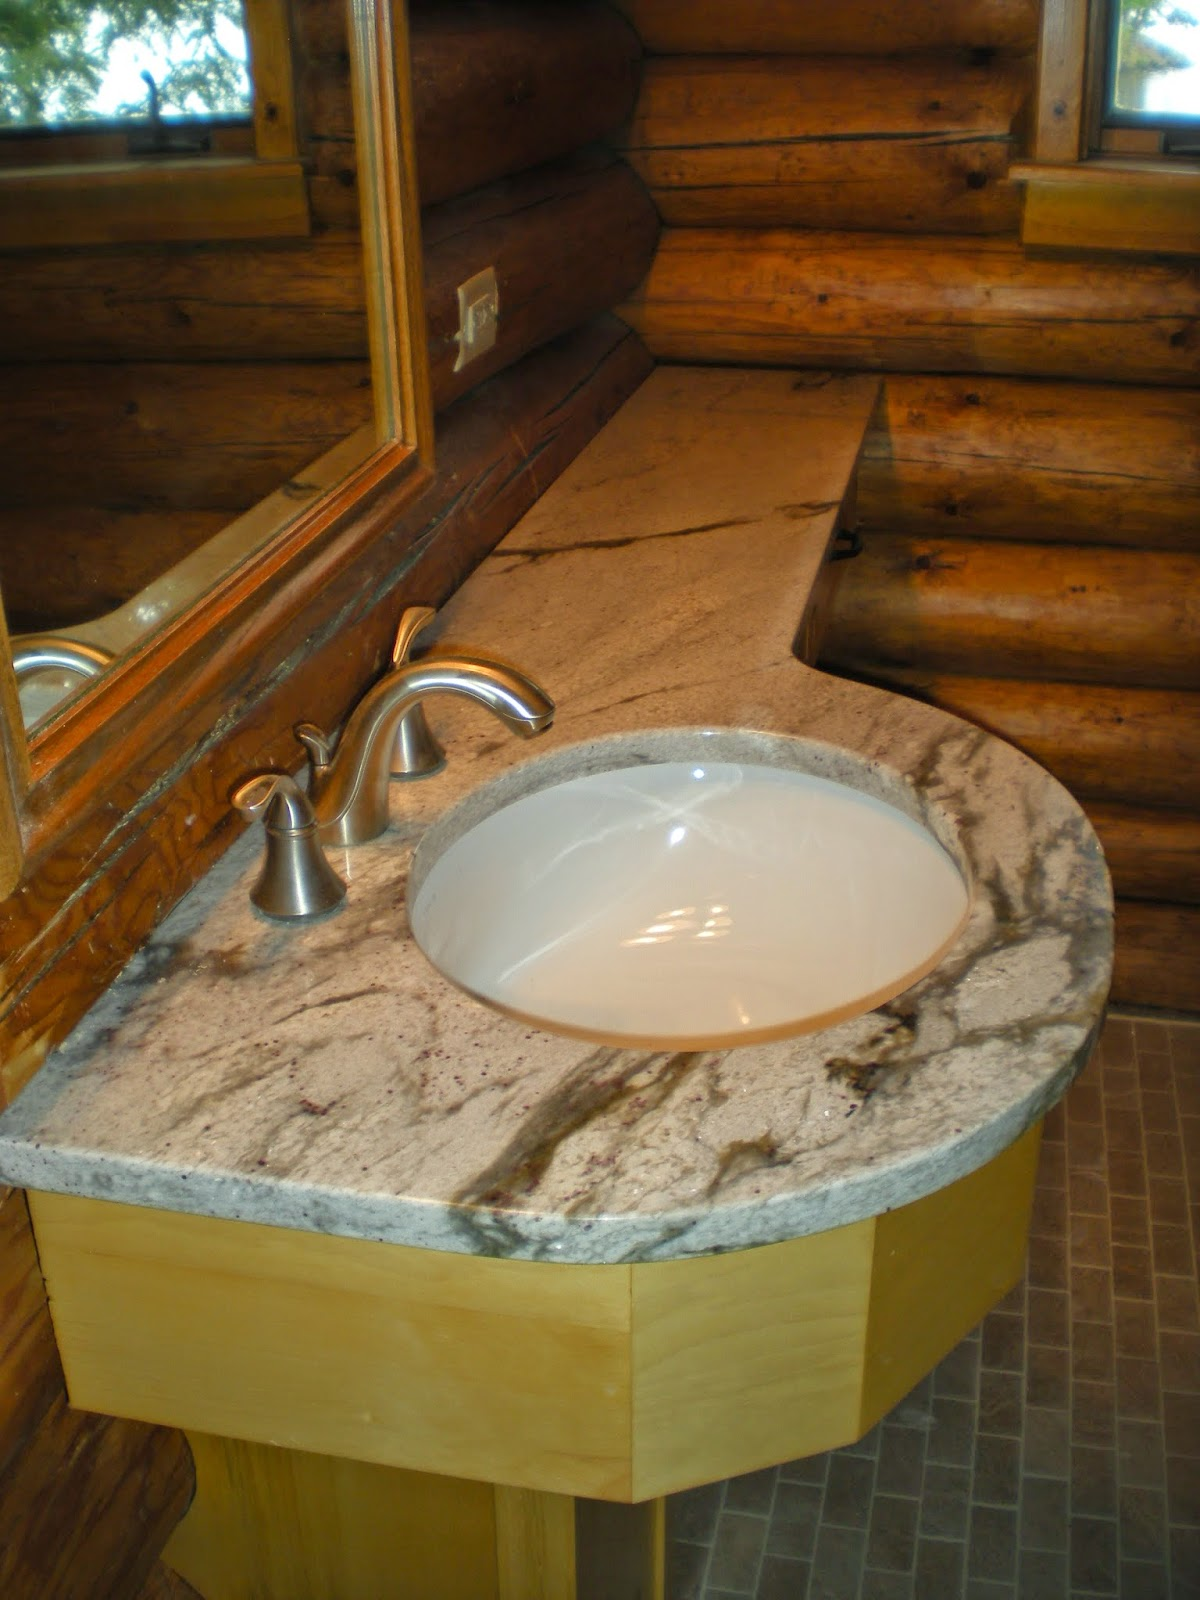 huismanconcepts.com, ely, mn, minnesota, granite, custom, construction, wood